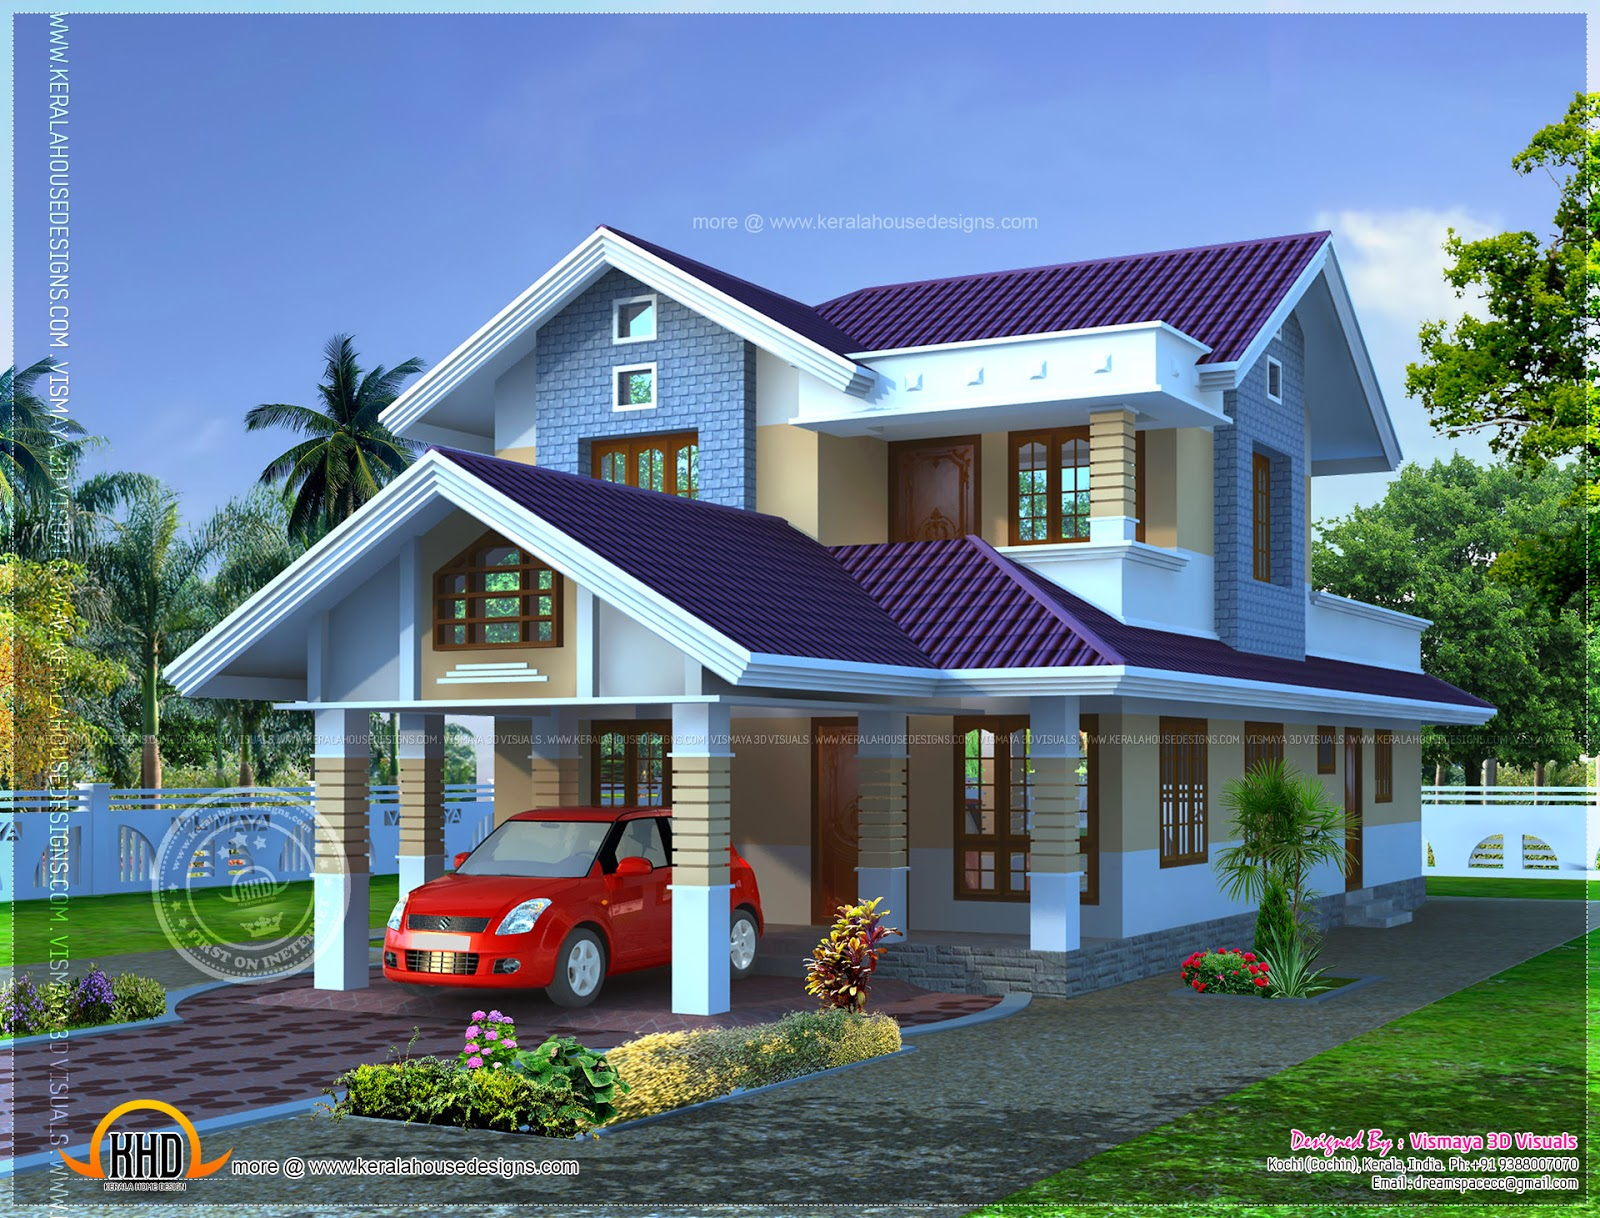 Narrow Lot House Plan Home Kerala Plans: narrow lot house plans